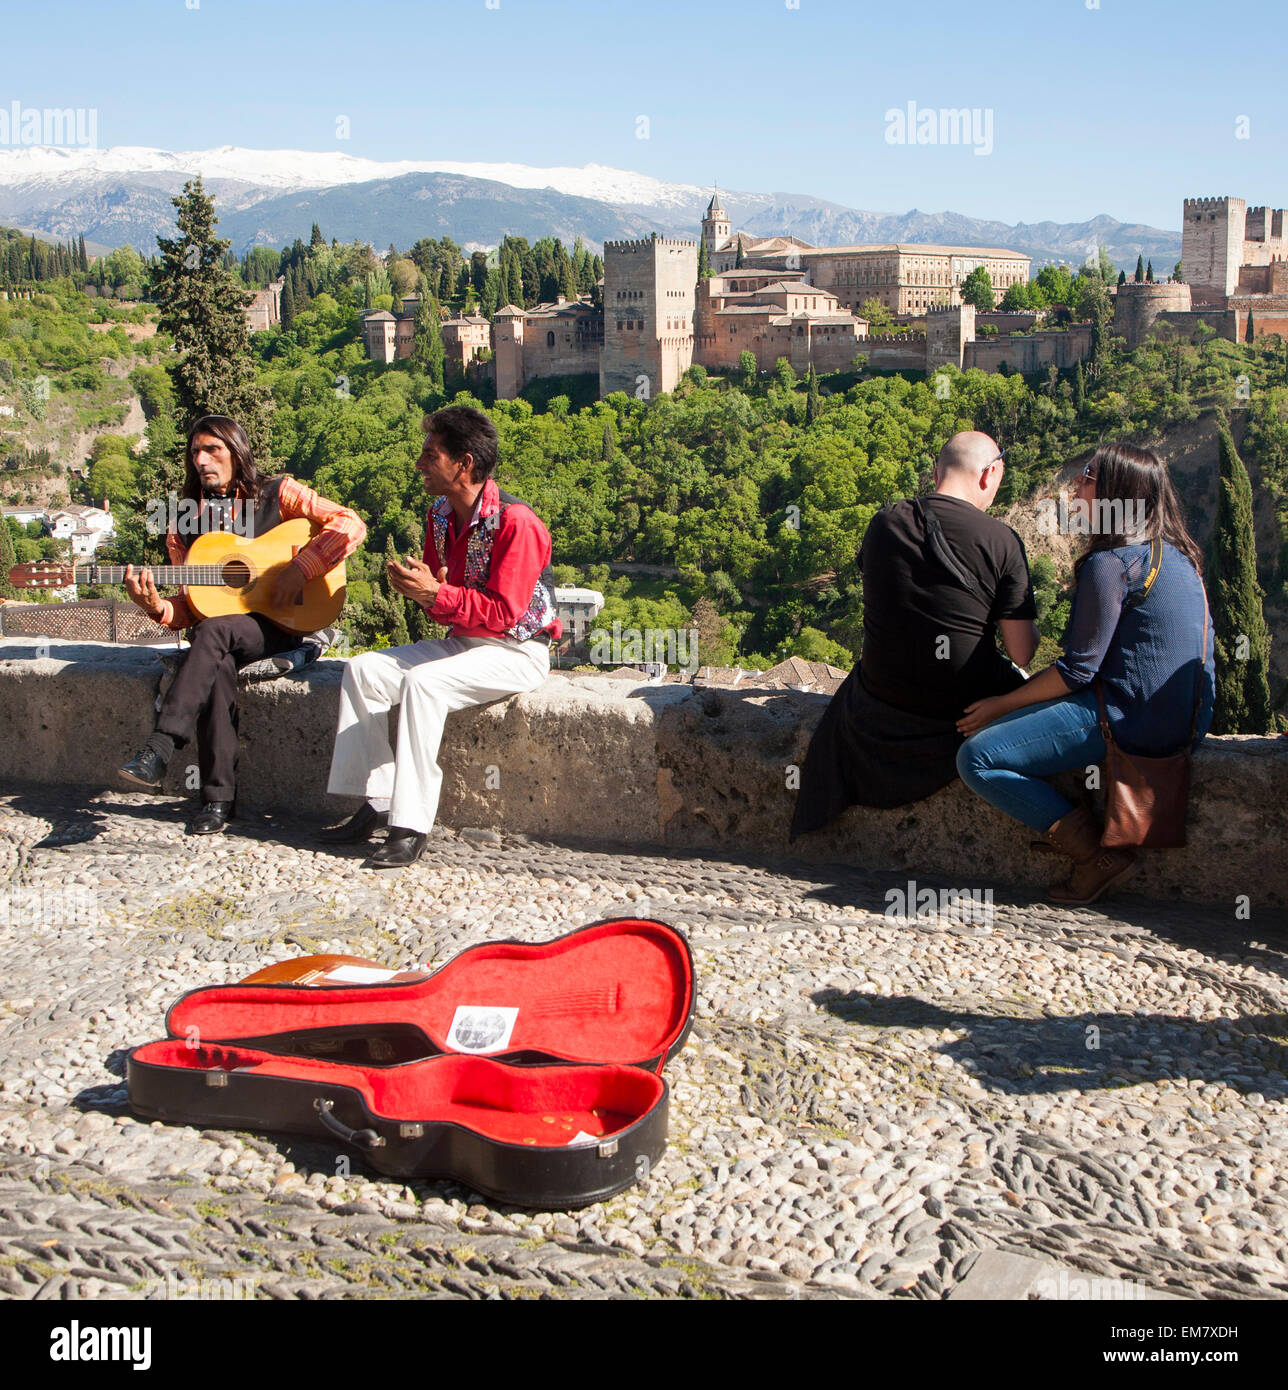 Flamenco musicians play with a backdrop of the snow Sierra Nevada mountains and the Alhambra, Granada, Spain - Stock Image